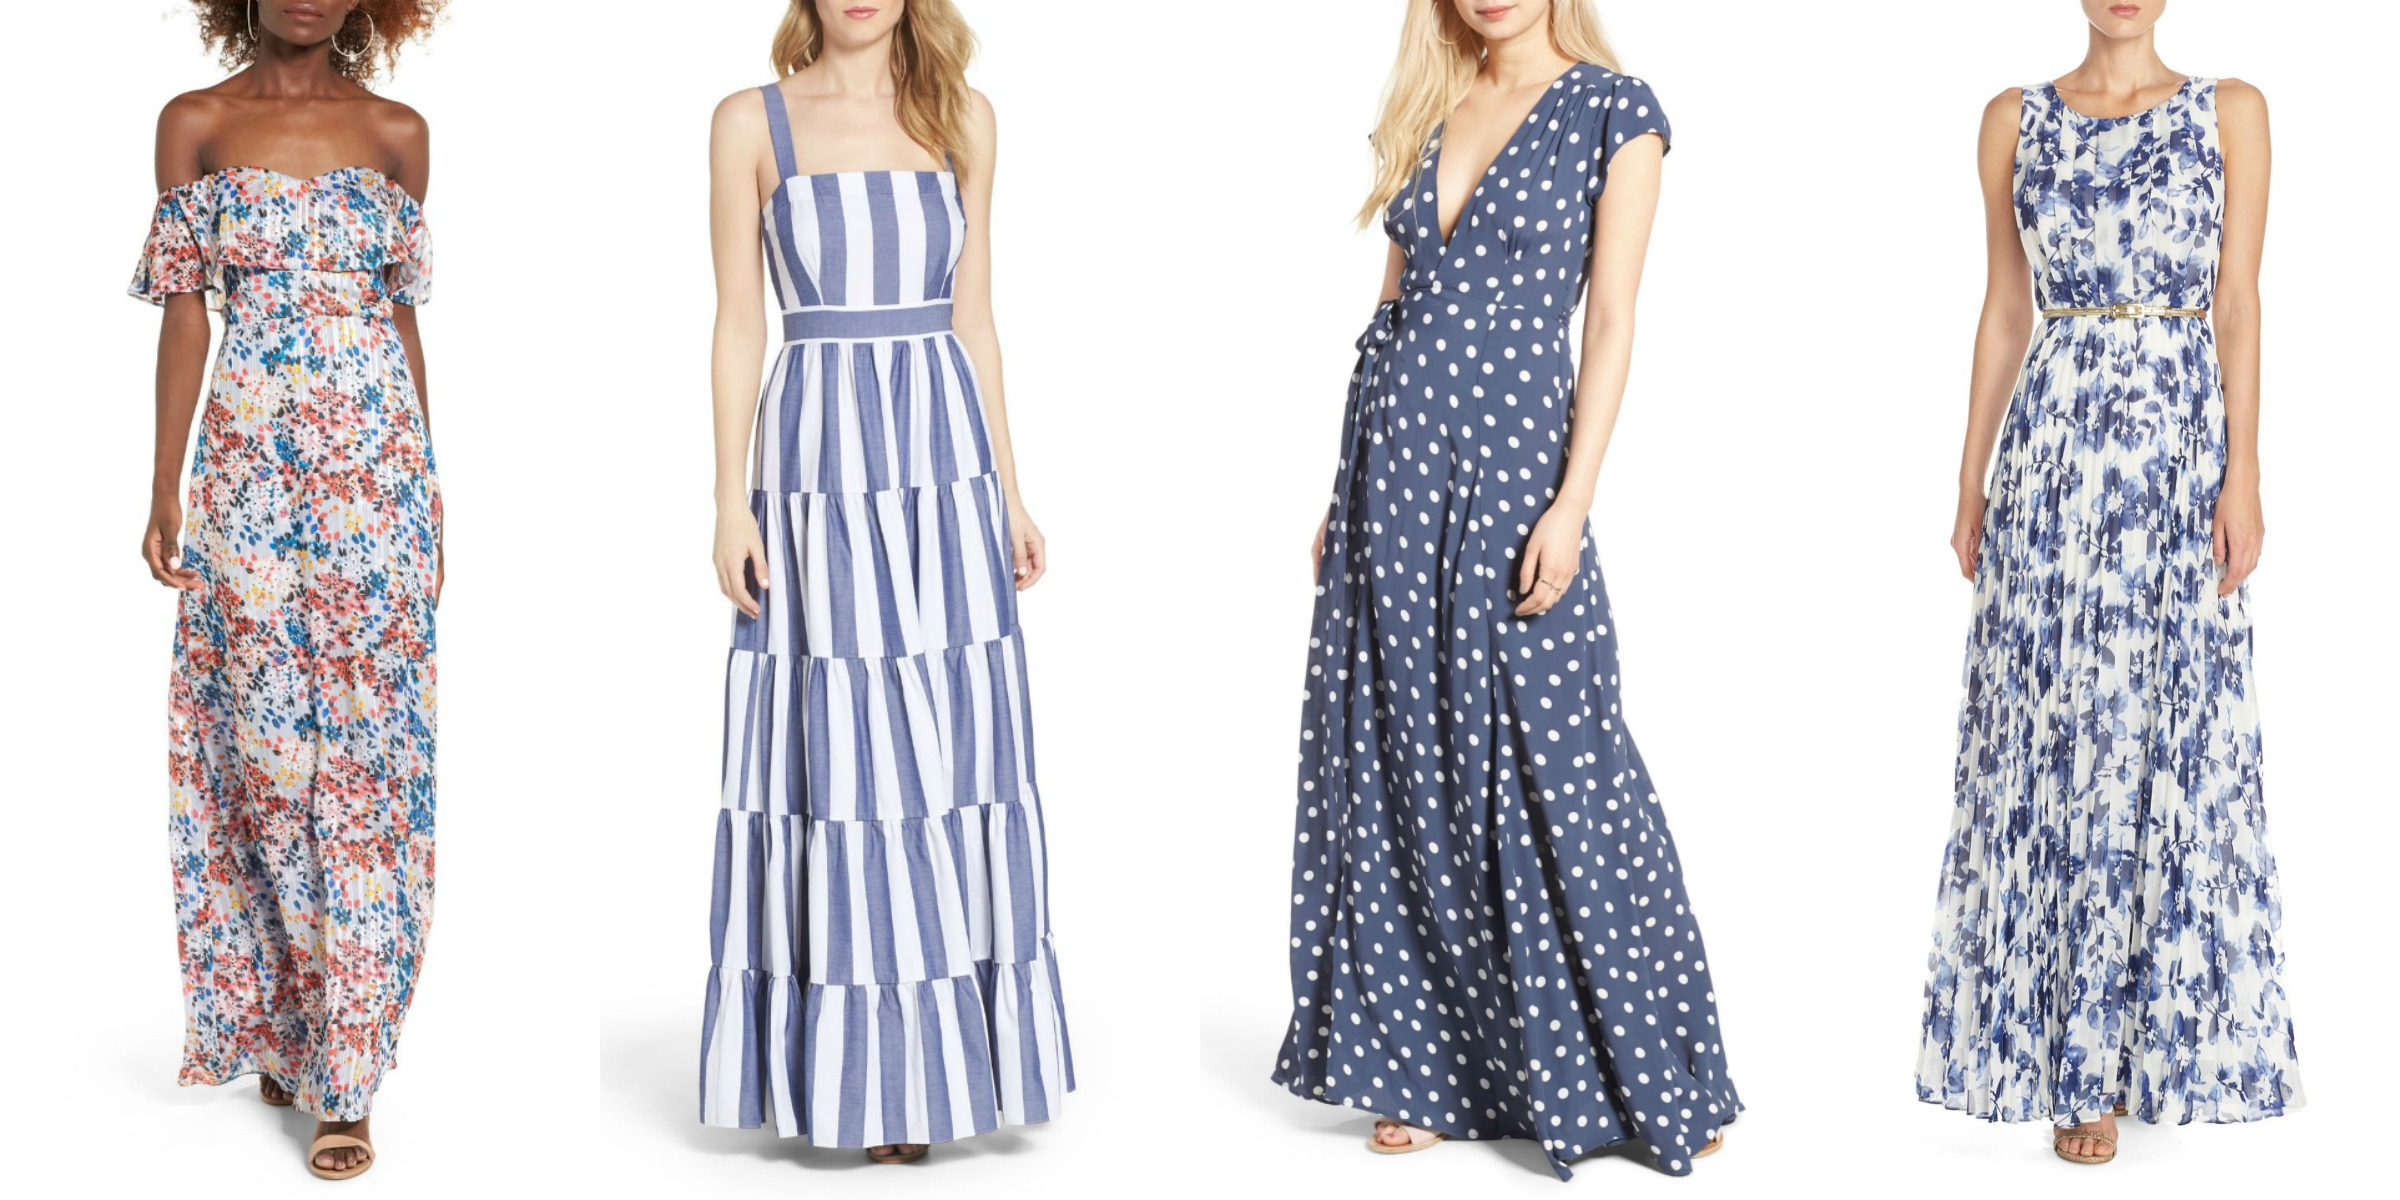 vacation outfit ideas best maxi dresses